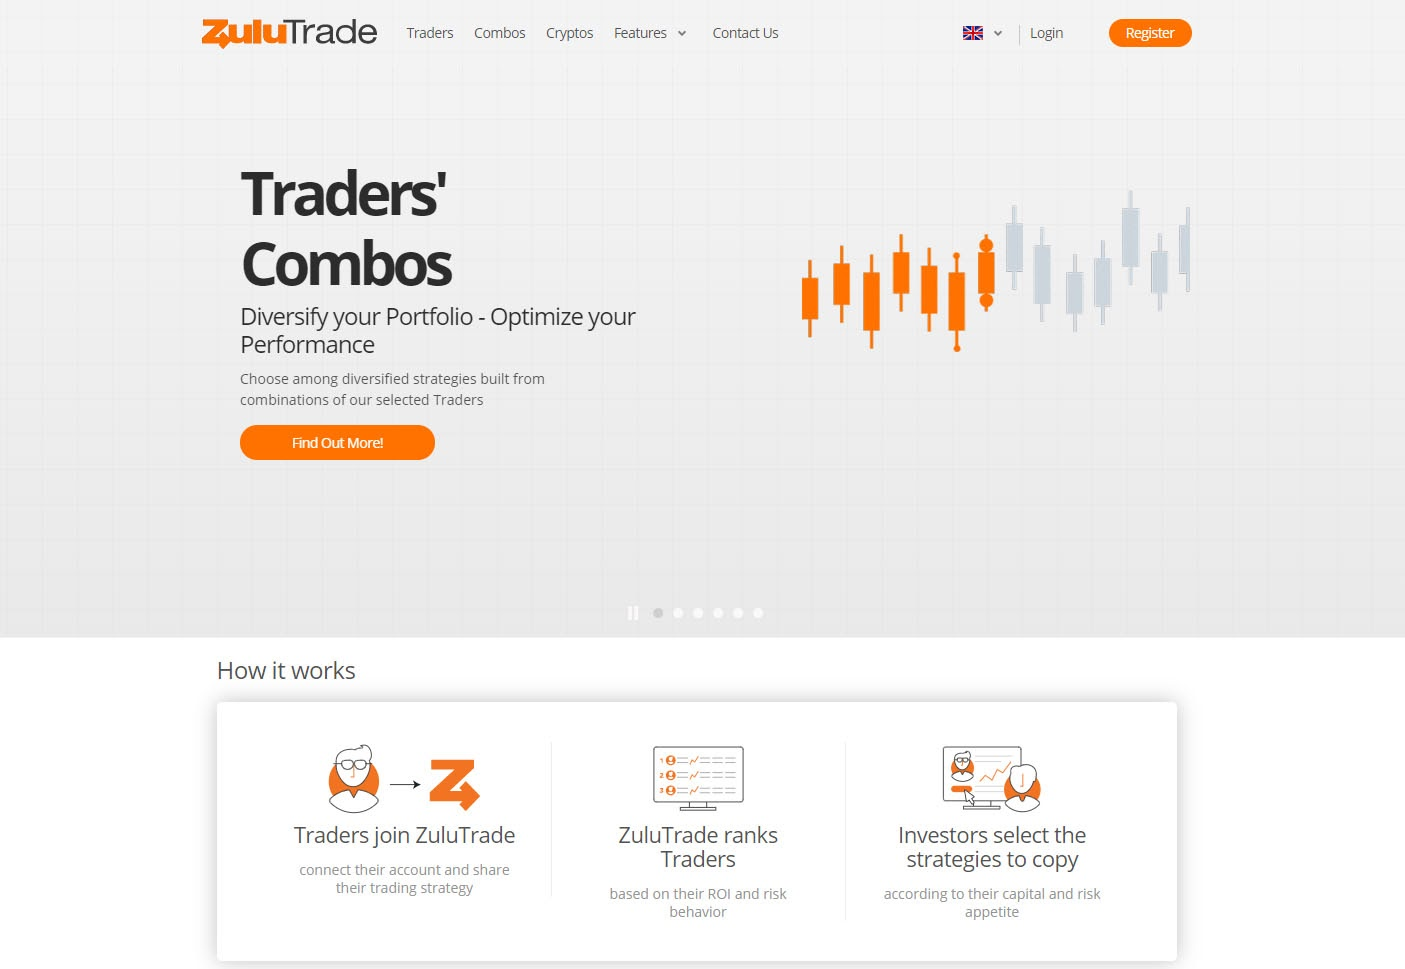 ZuluTrade is a cross-broker social trading platform